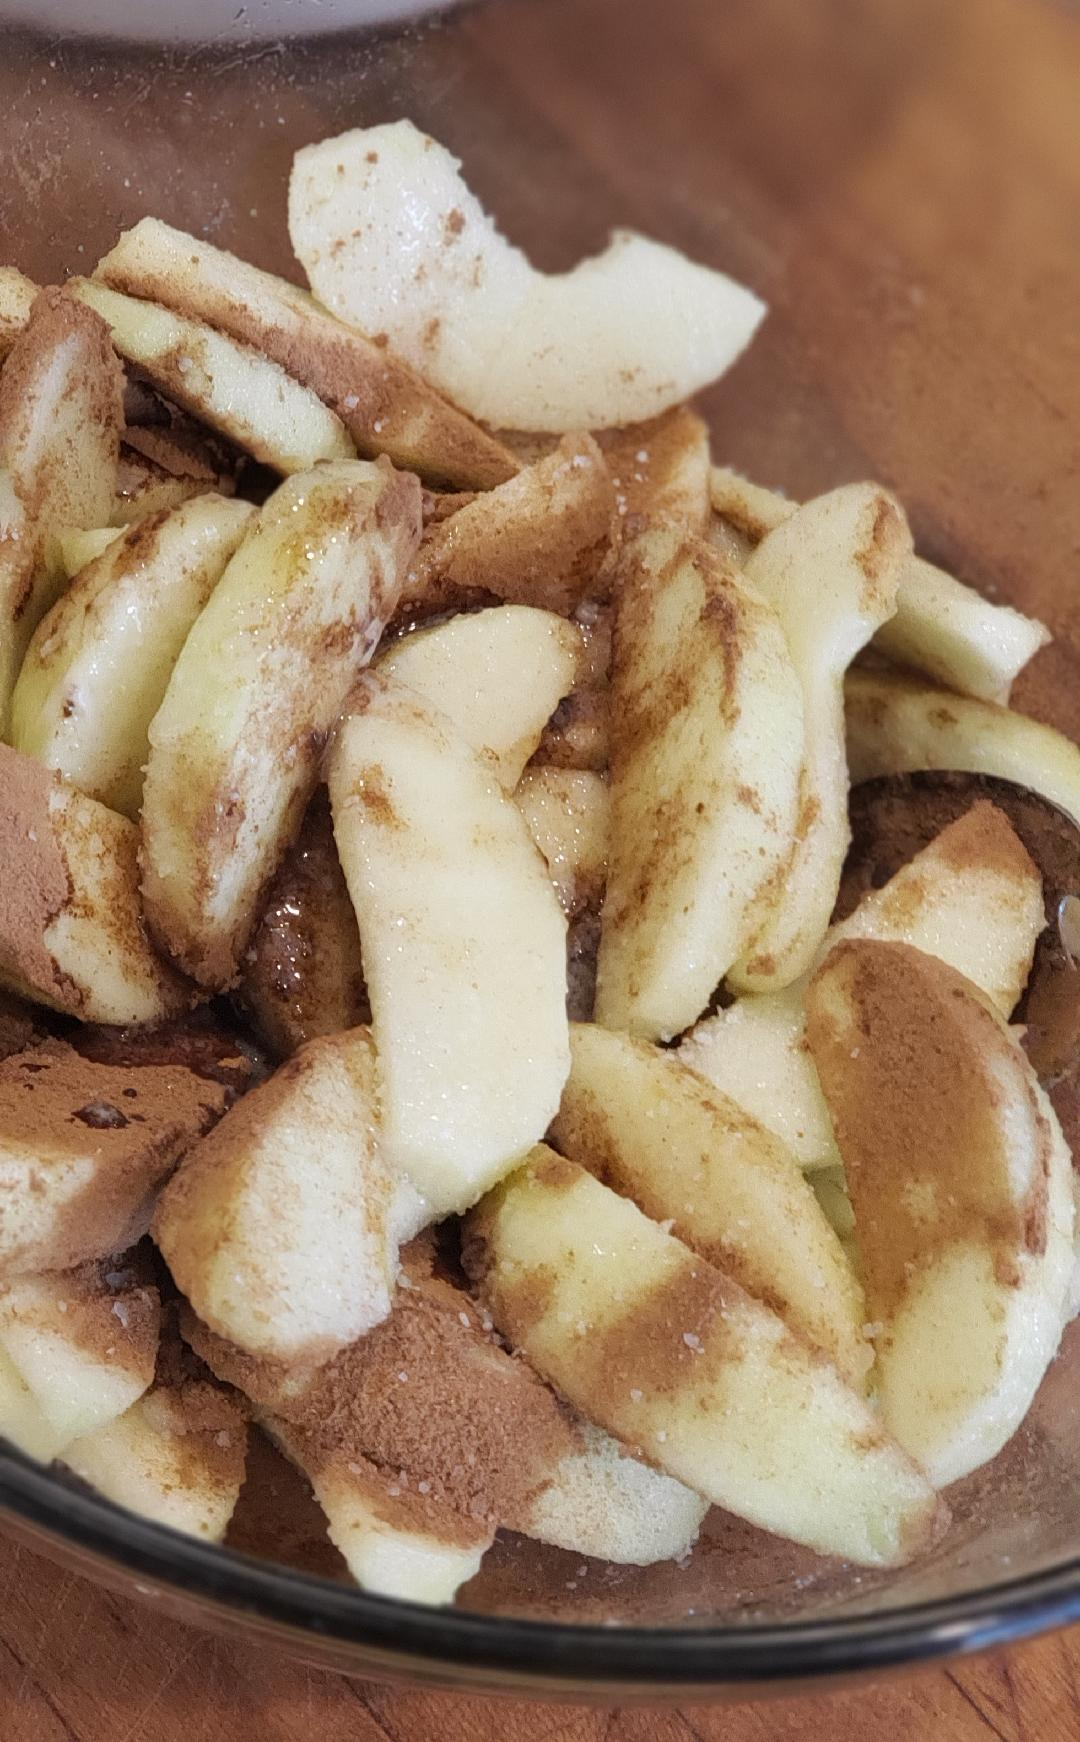 Cinnamon apple slices in bowl